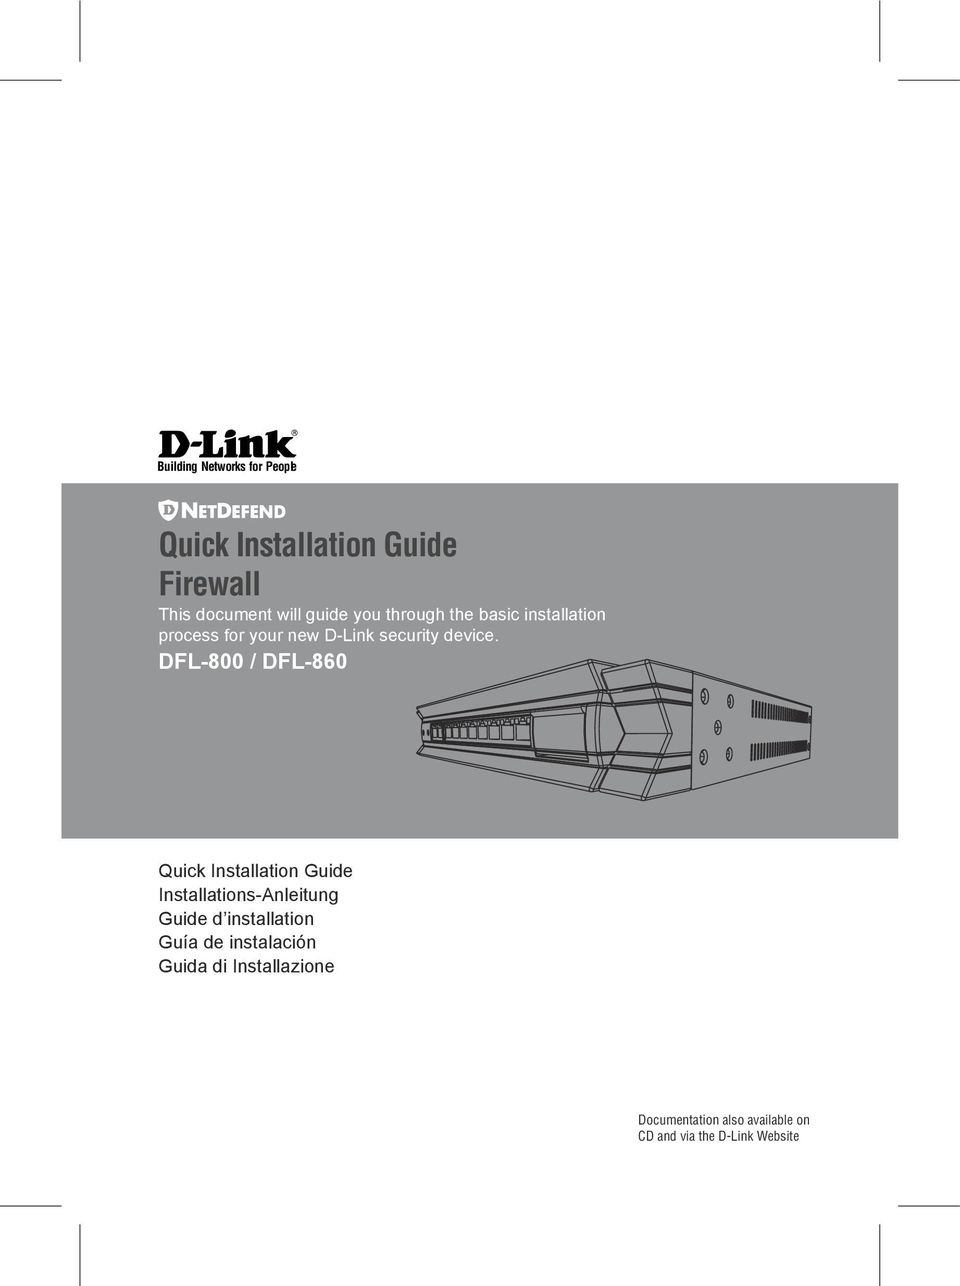 DFL-800 / DFL-860 Quick Installation Guide Installations-Anleitung Guide d installation